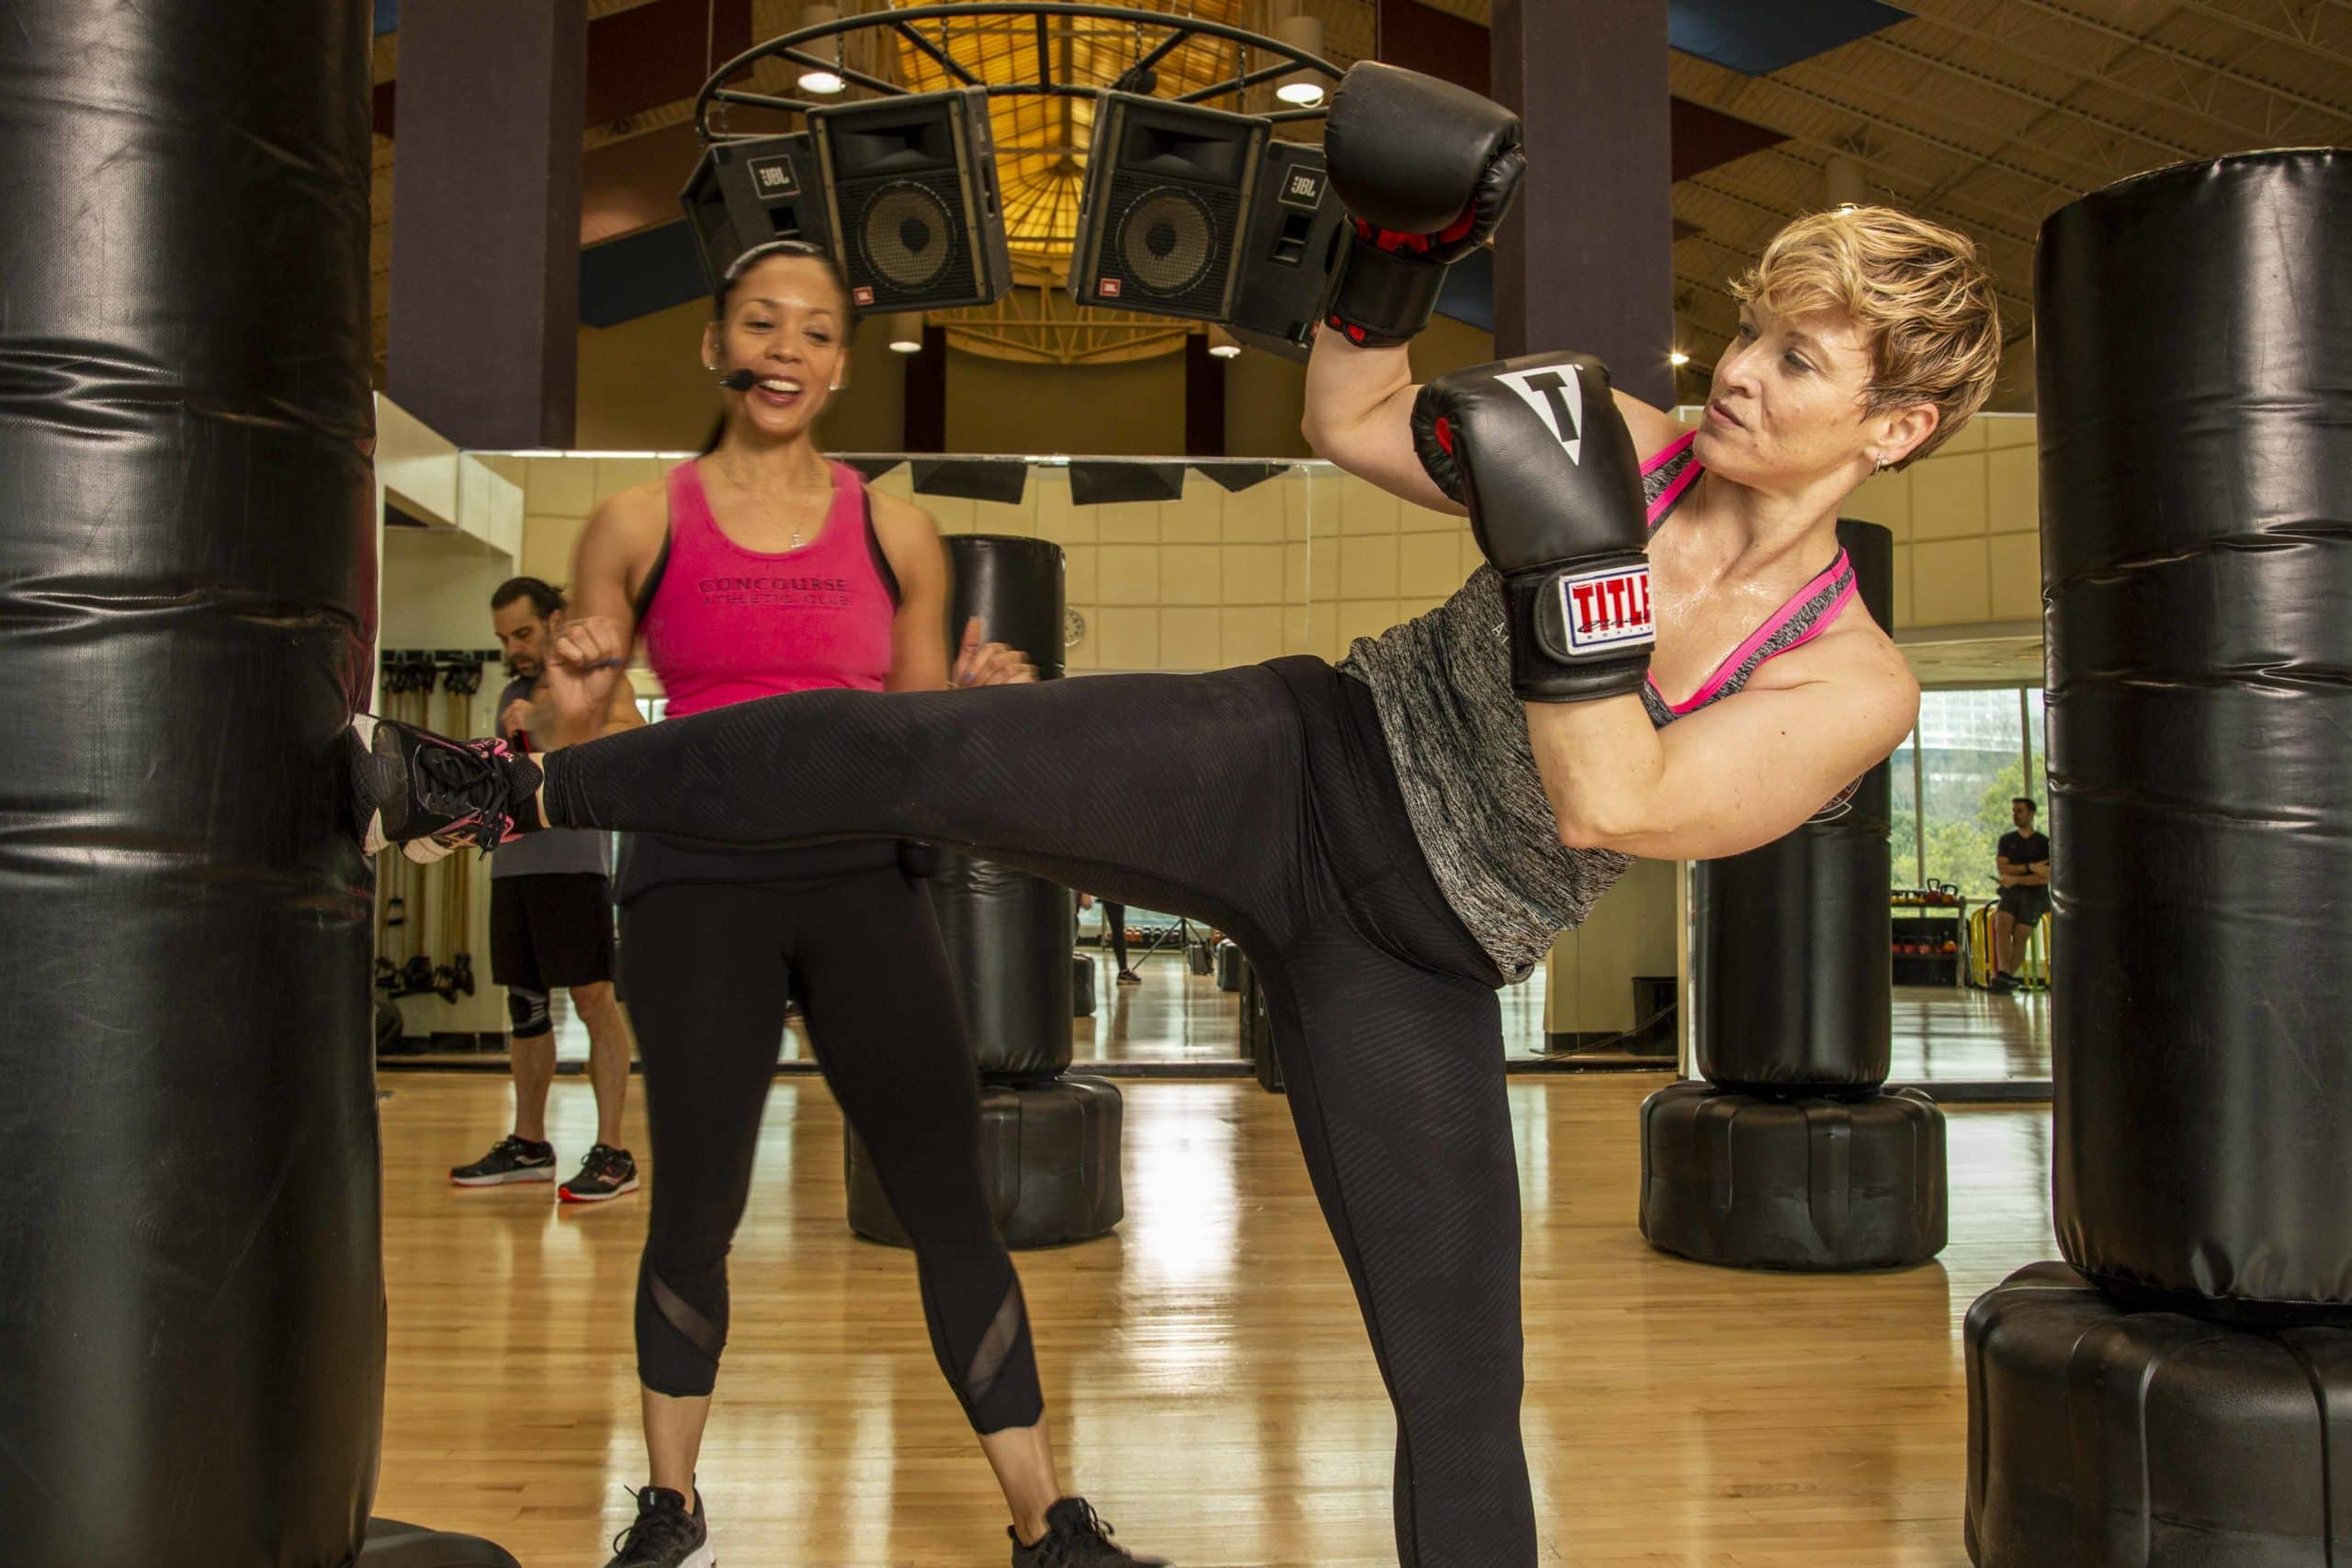 kickboxing class at Concourse